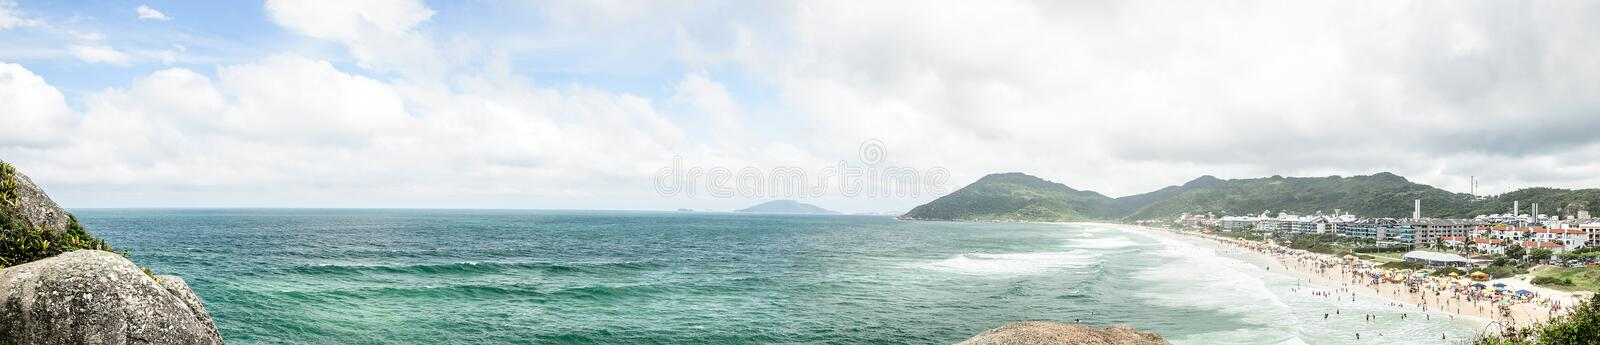 Panoramic view of Praia Brava beach in Florianopolis, Brazil. The sea, some stones, mountains and people on the beach stock image